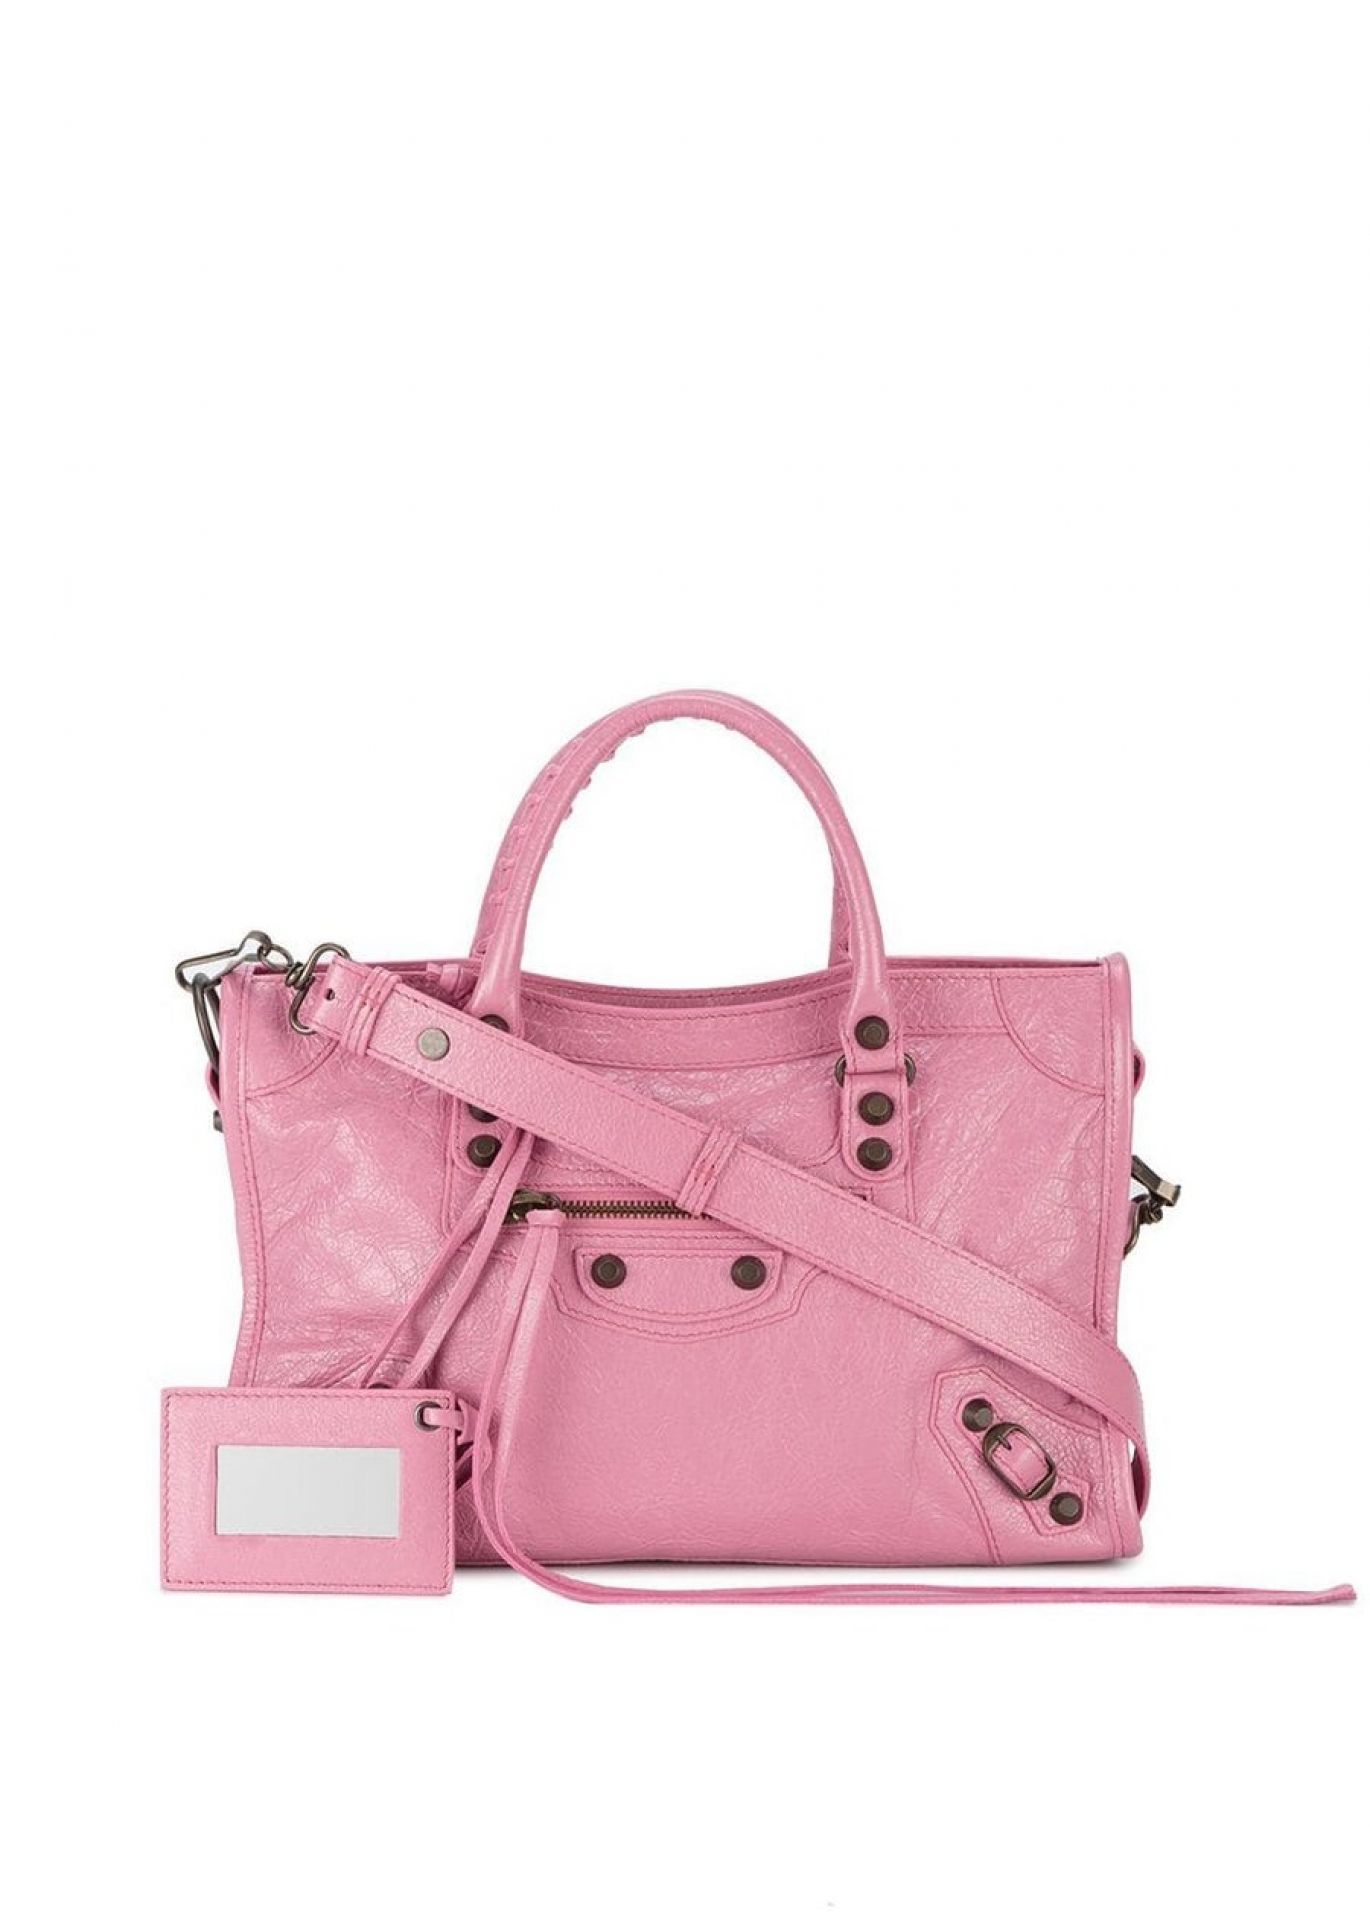 BALENCIAGA WOMENS PINK LEATHER CLASSIC CITY SMALL SHOULDER BAG